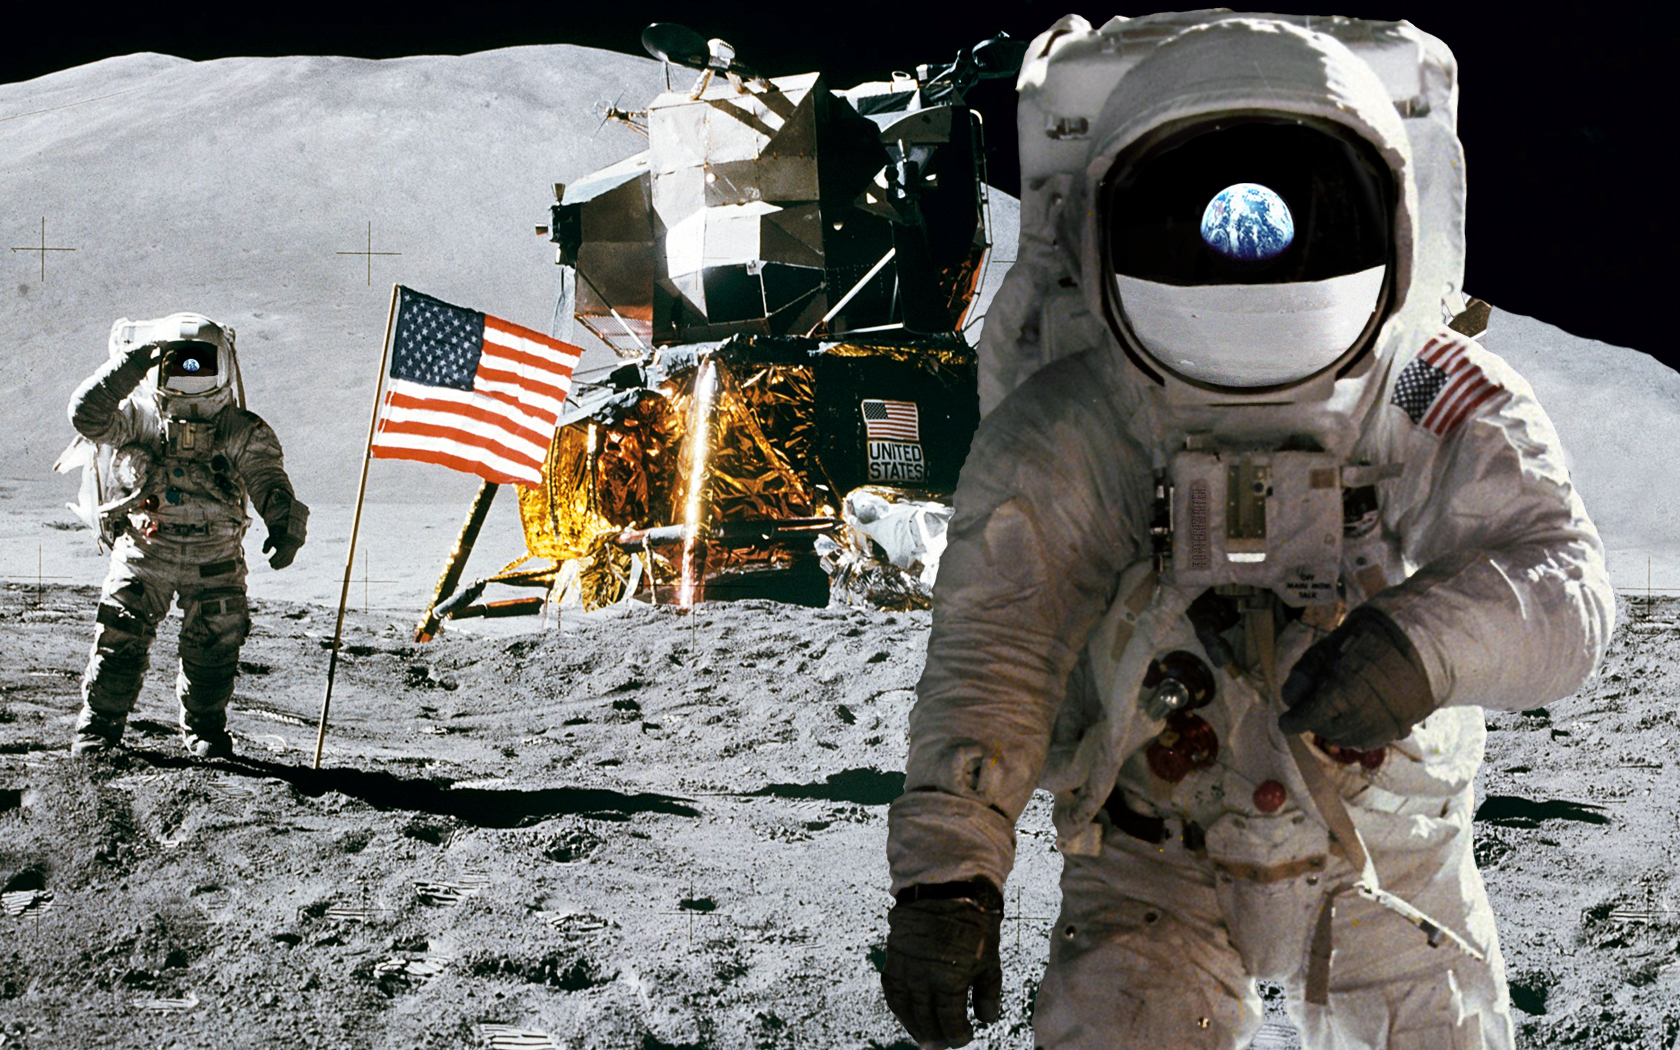 Astronaut on the Moon Wallpaper - WallpaperSafari